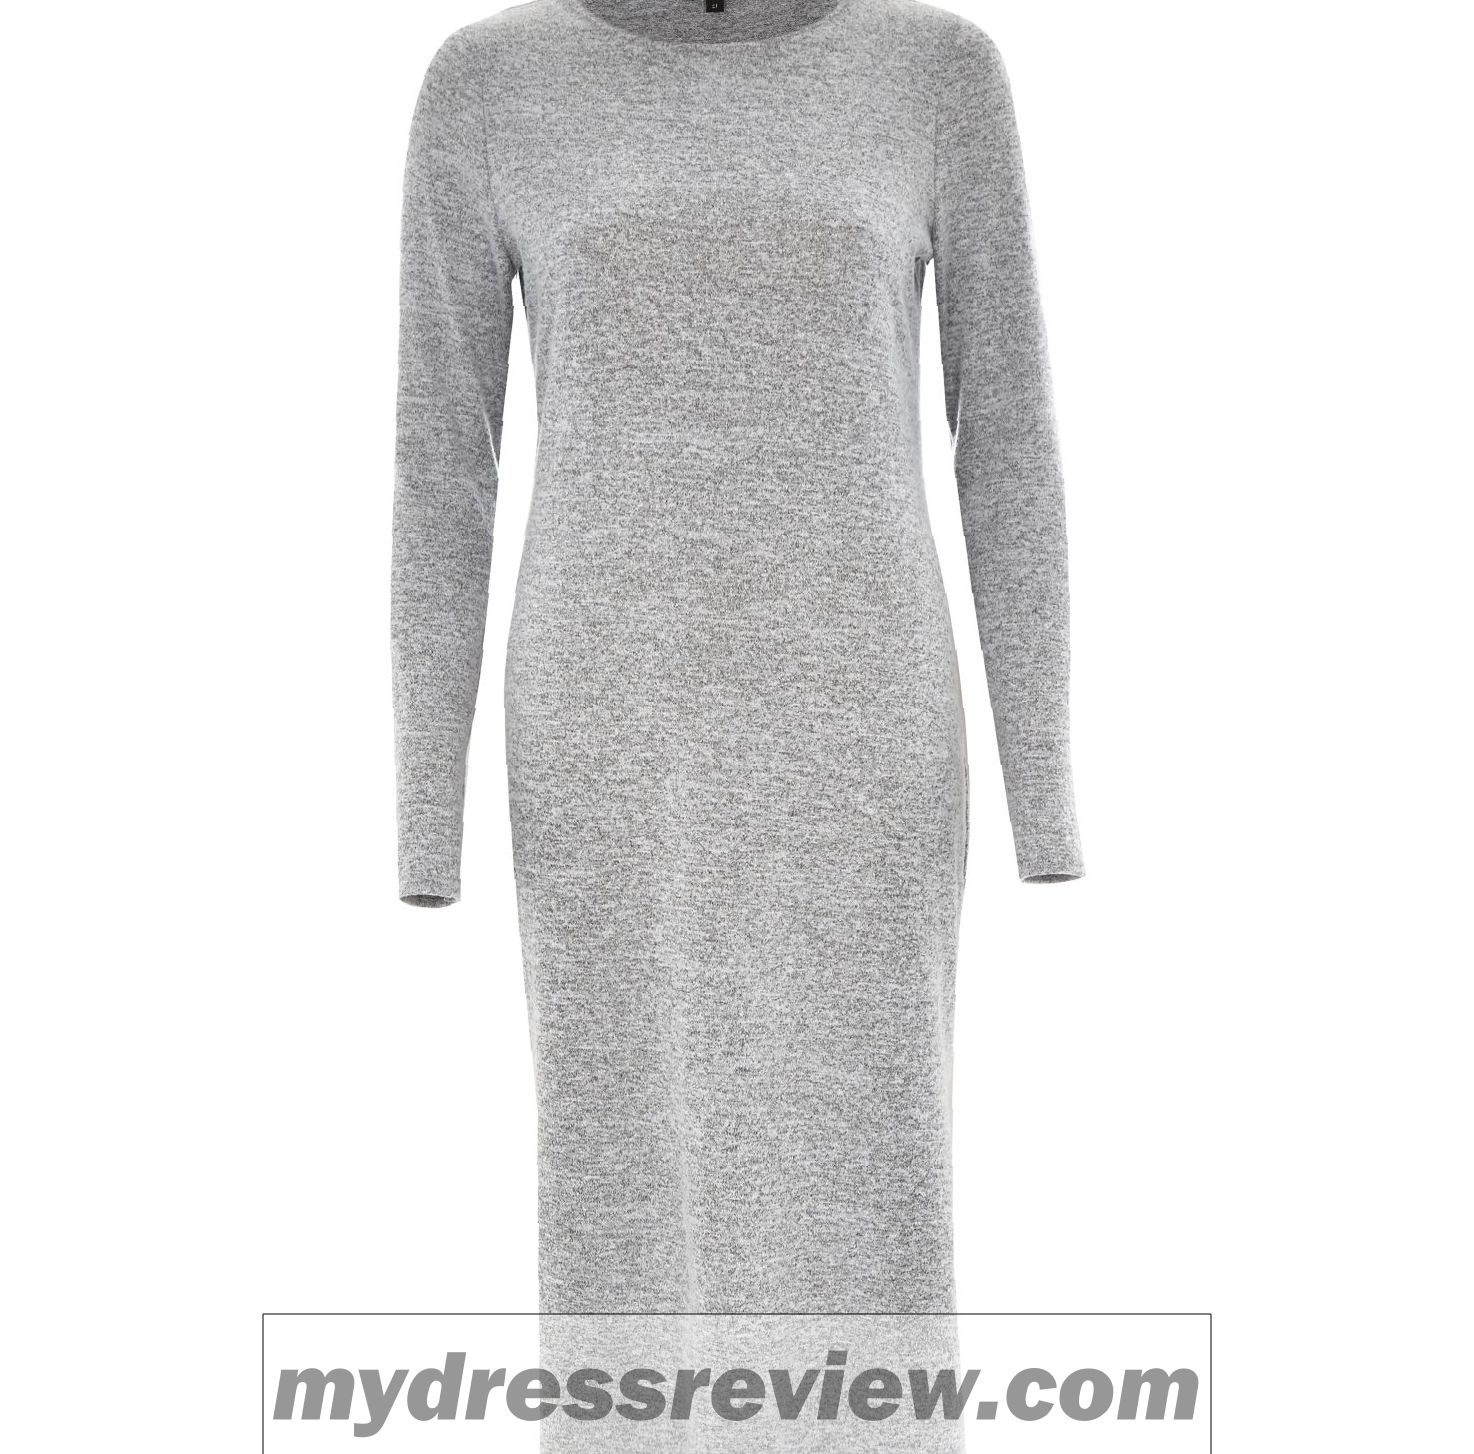 Grey River Island Dress & Review 2017